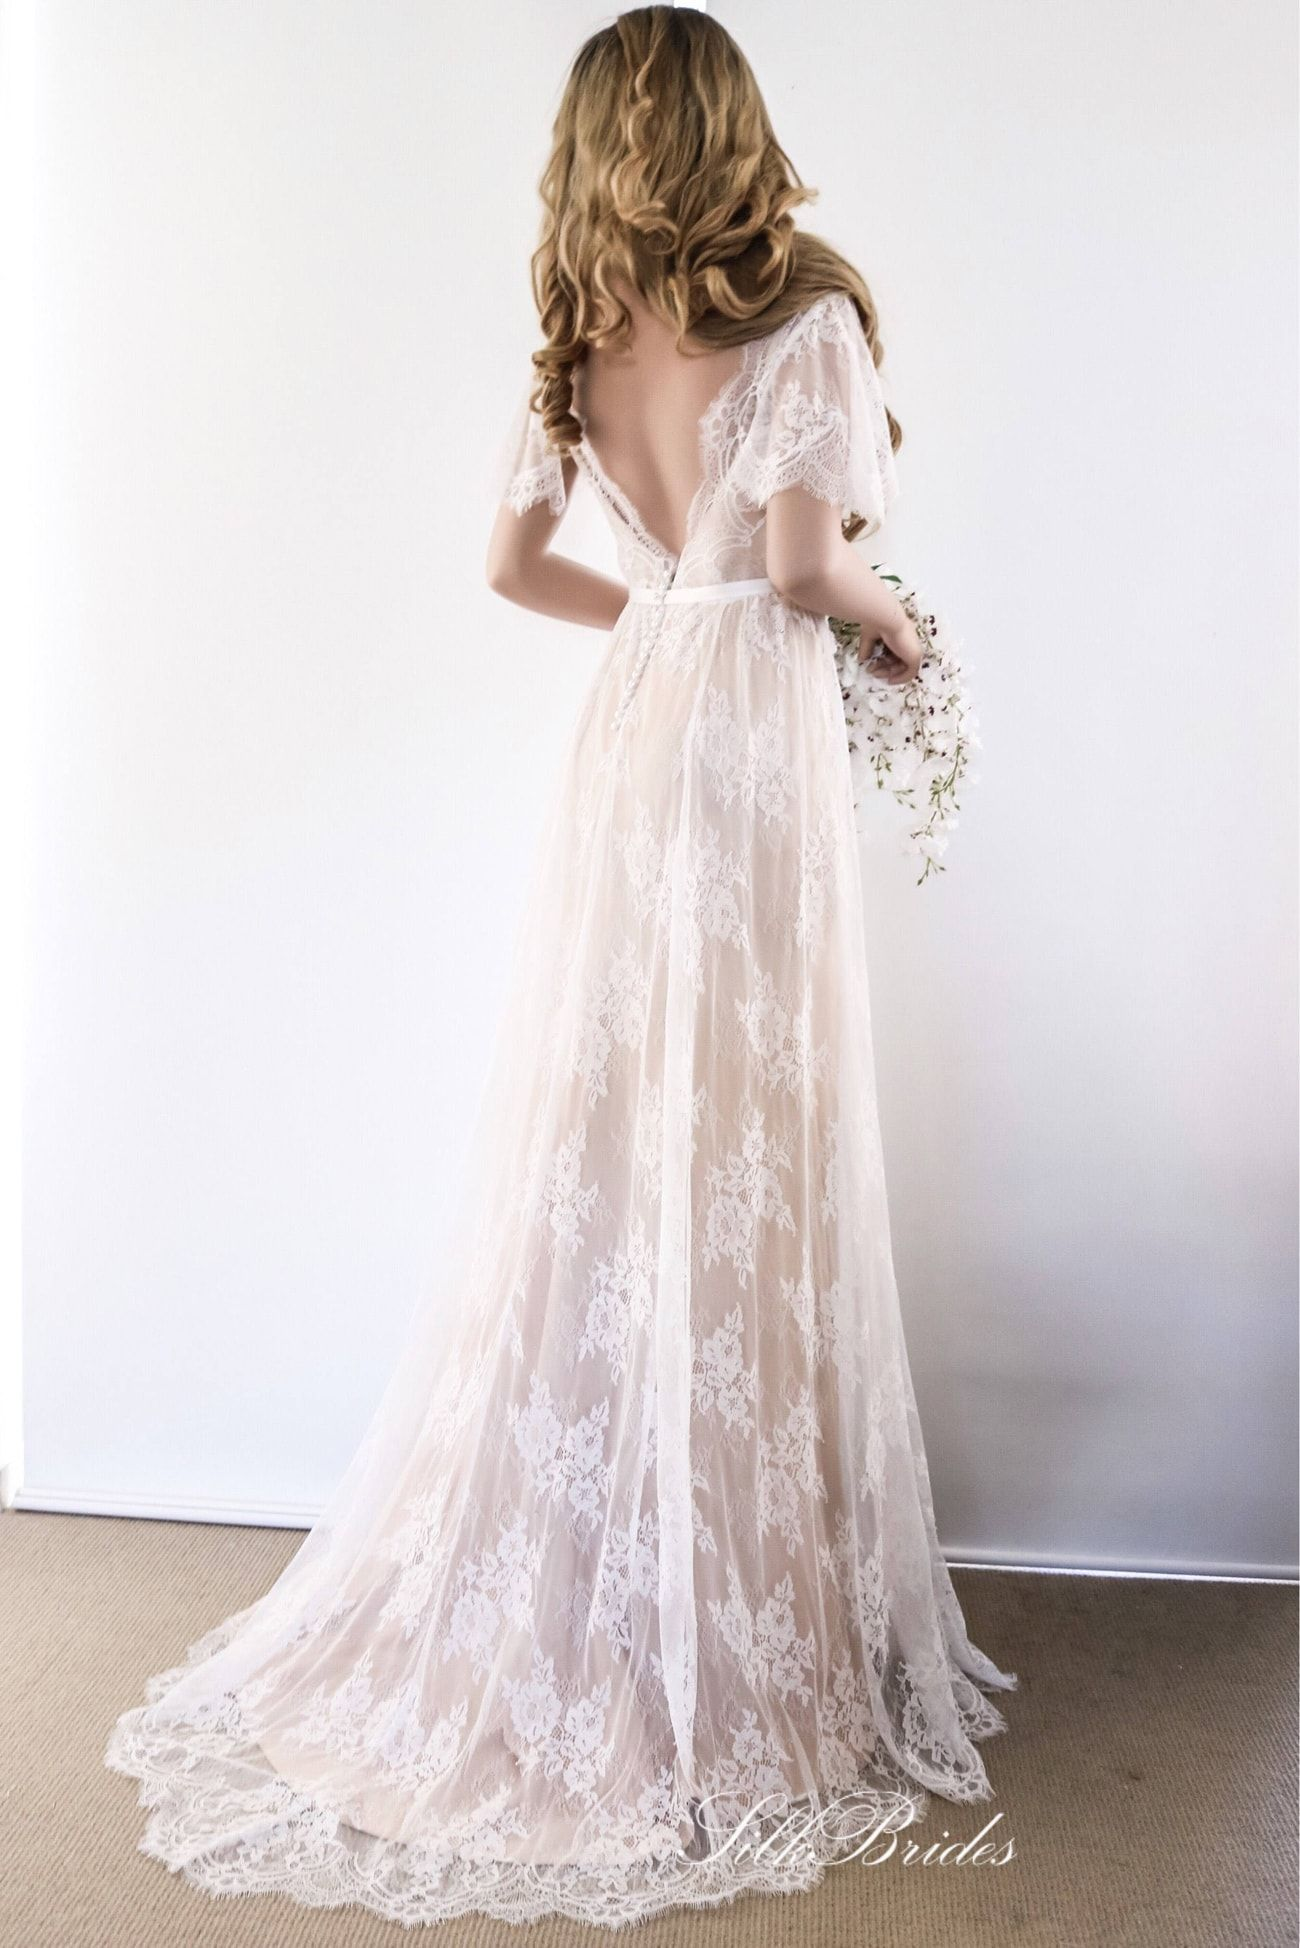 44b4fbcade2d 20 Chic & Sheer Wedding Dresses from Etsy | SouthBound Bride ...